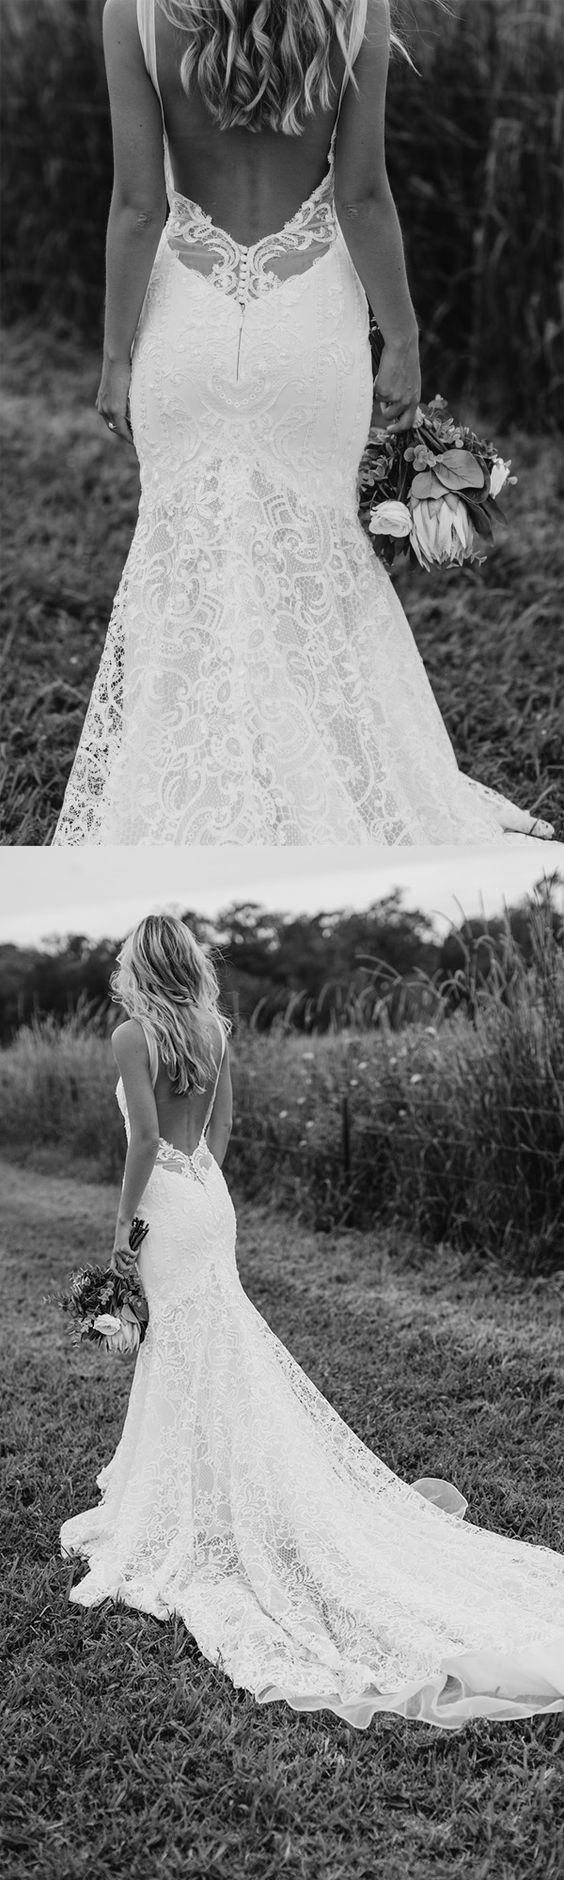 best 25 gorgeous wedding dress ideas on pinterest is 2016 gorgeous hair and wedding dresses. Black Bedroom Furniture Sets. Home Design Ideas